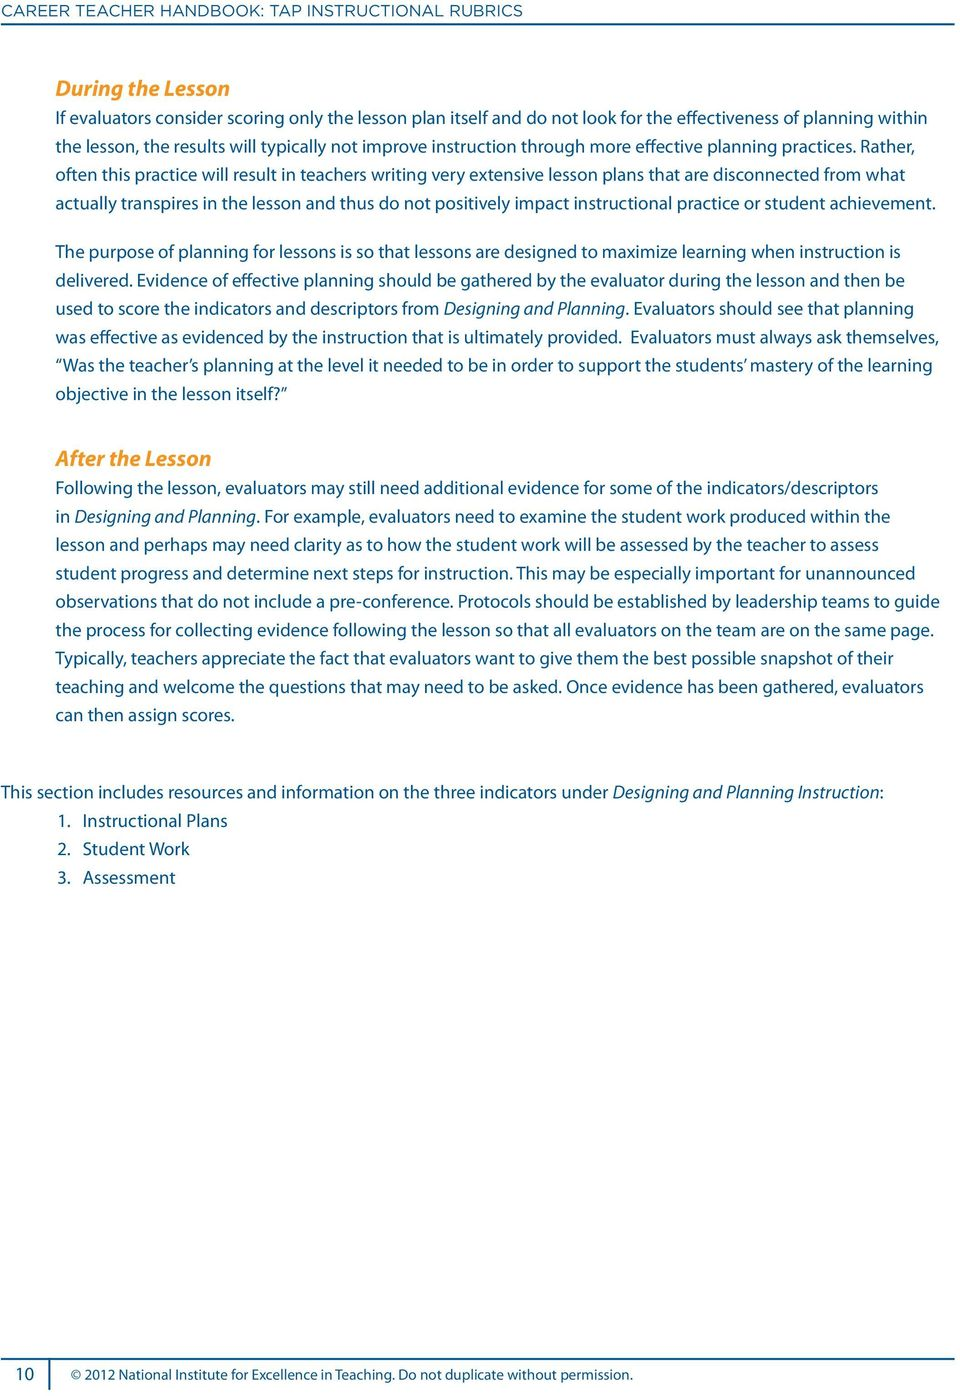 Explanation Of Tap S Teaching Skills Knowledge And Pdf